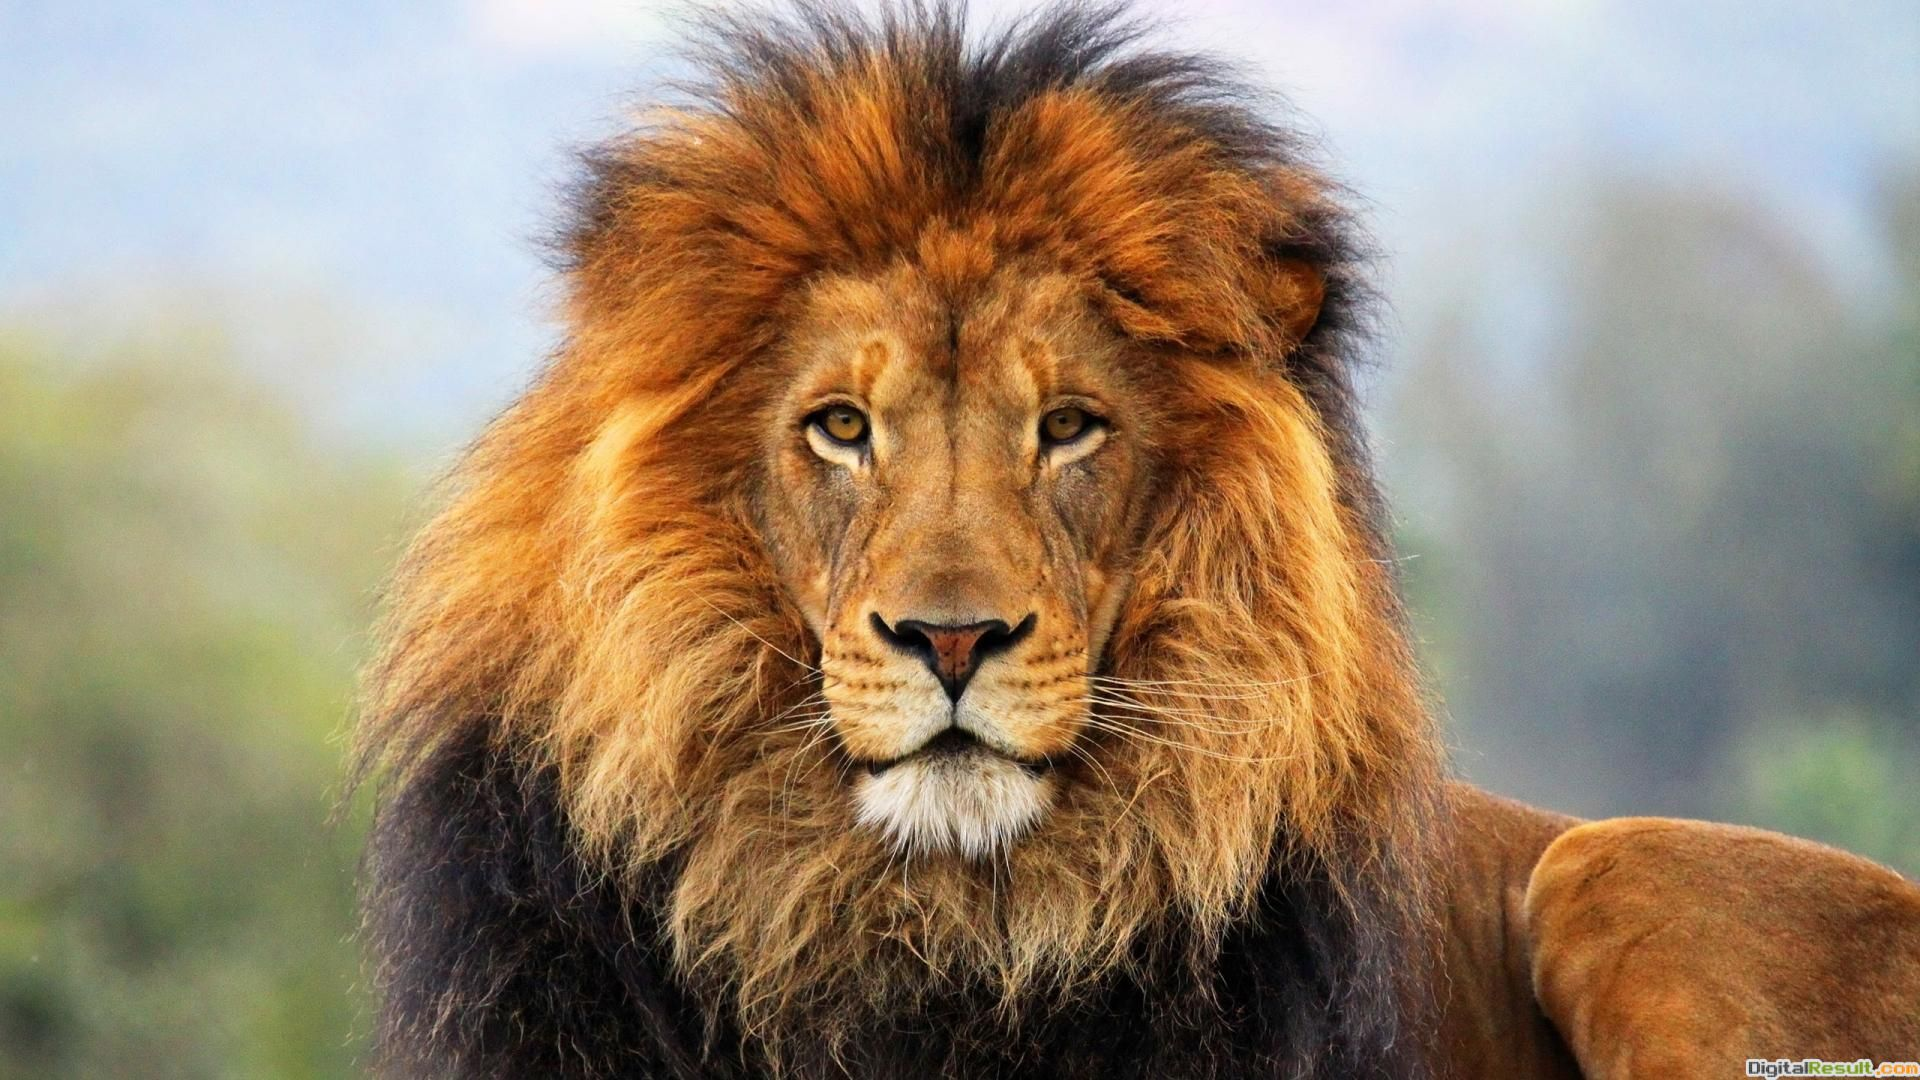 lion wallpaper hd 1080p categories animals wallpapers